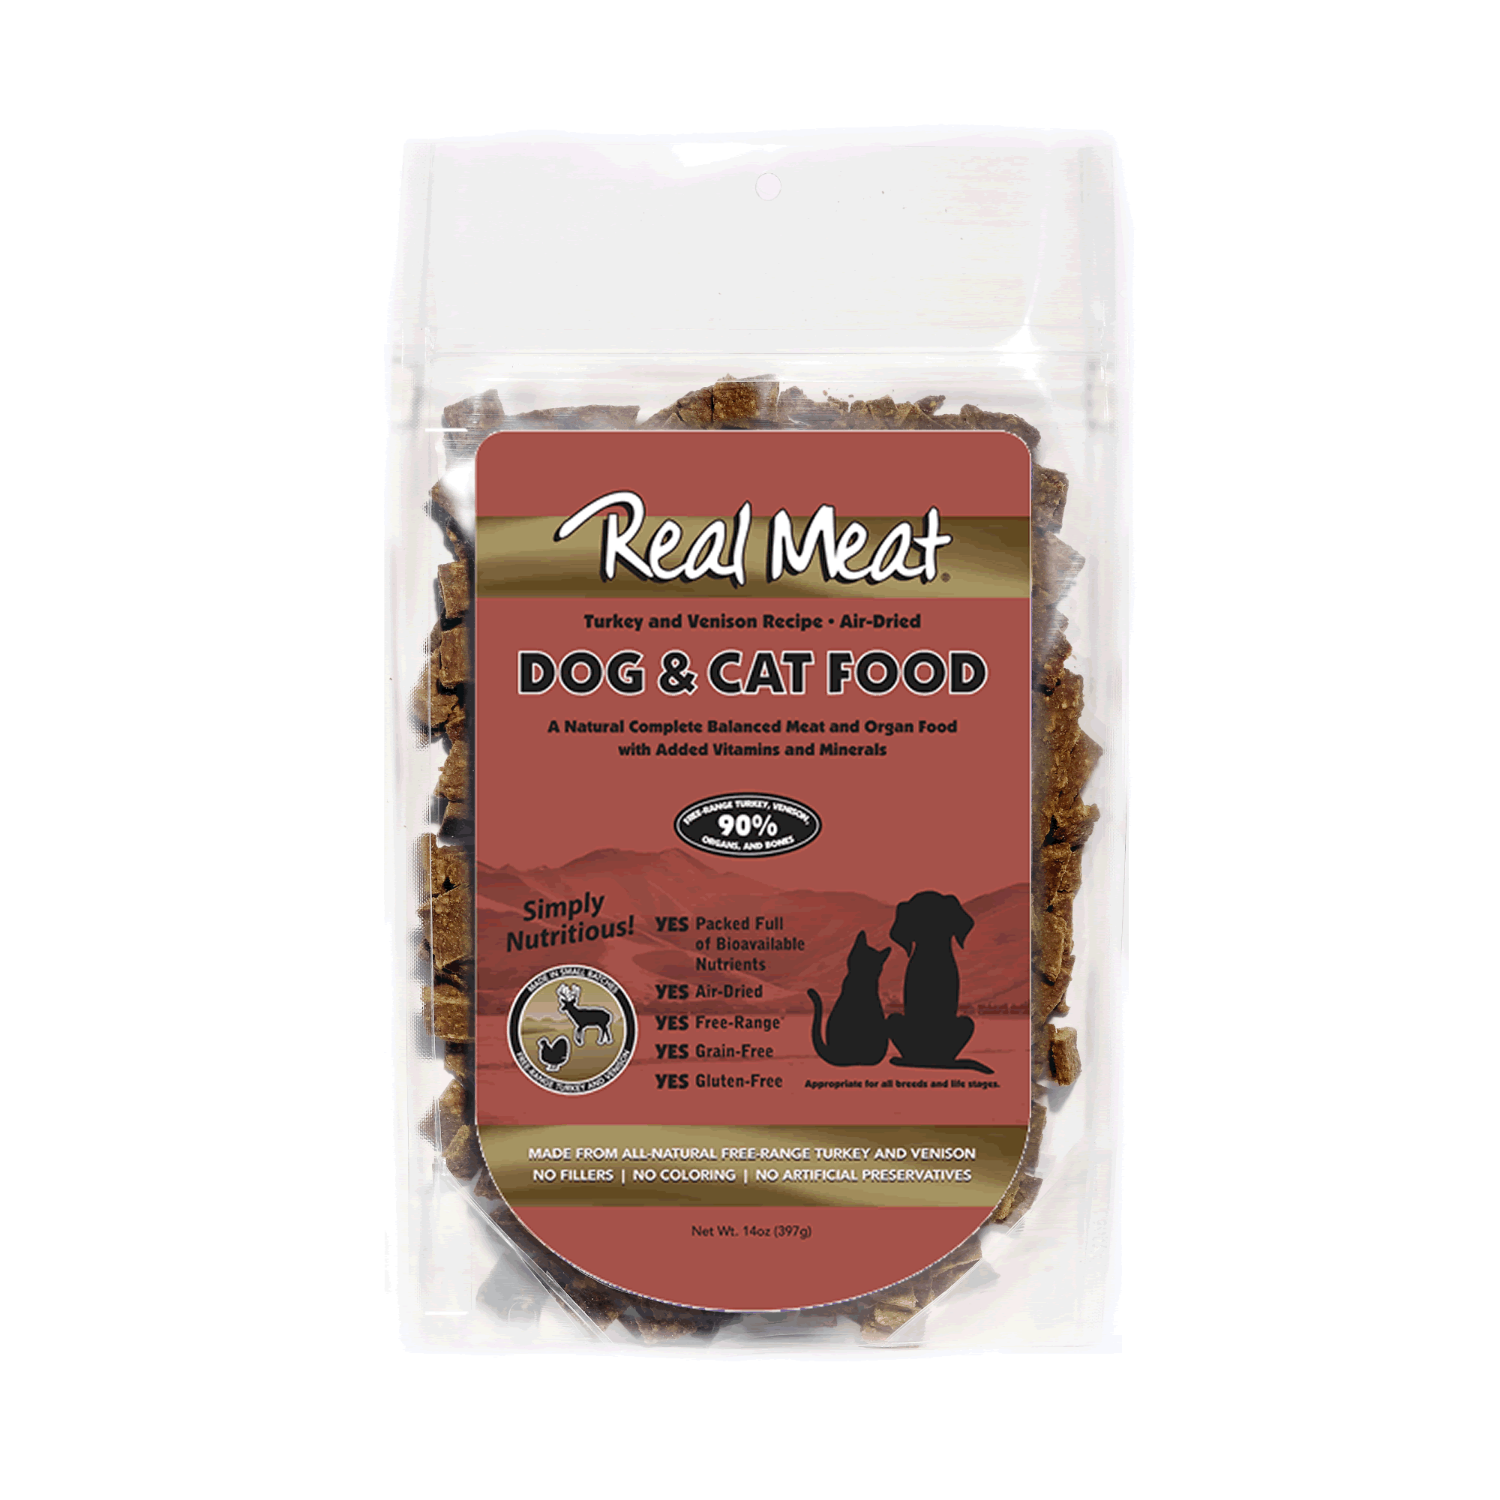 Real Meat Dog and Cat Food - Turkey and Venison